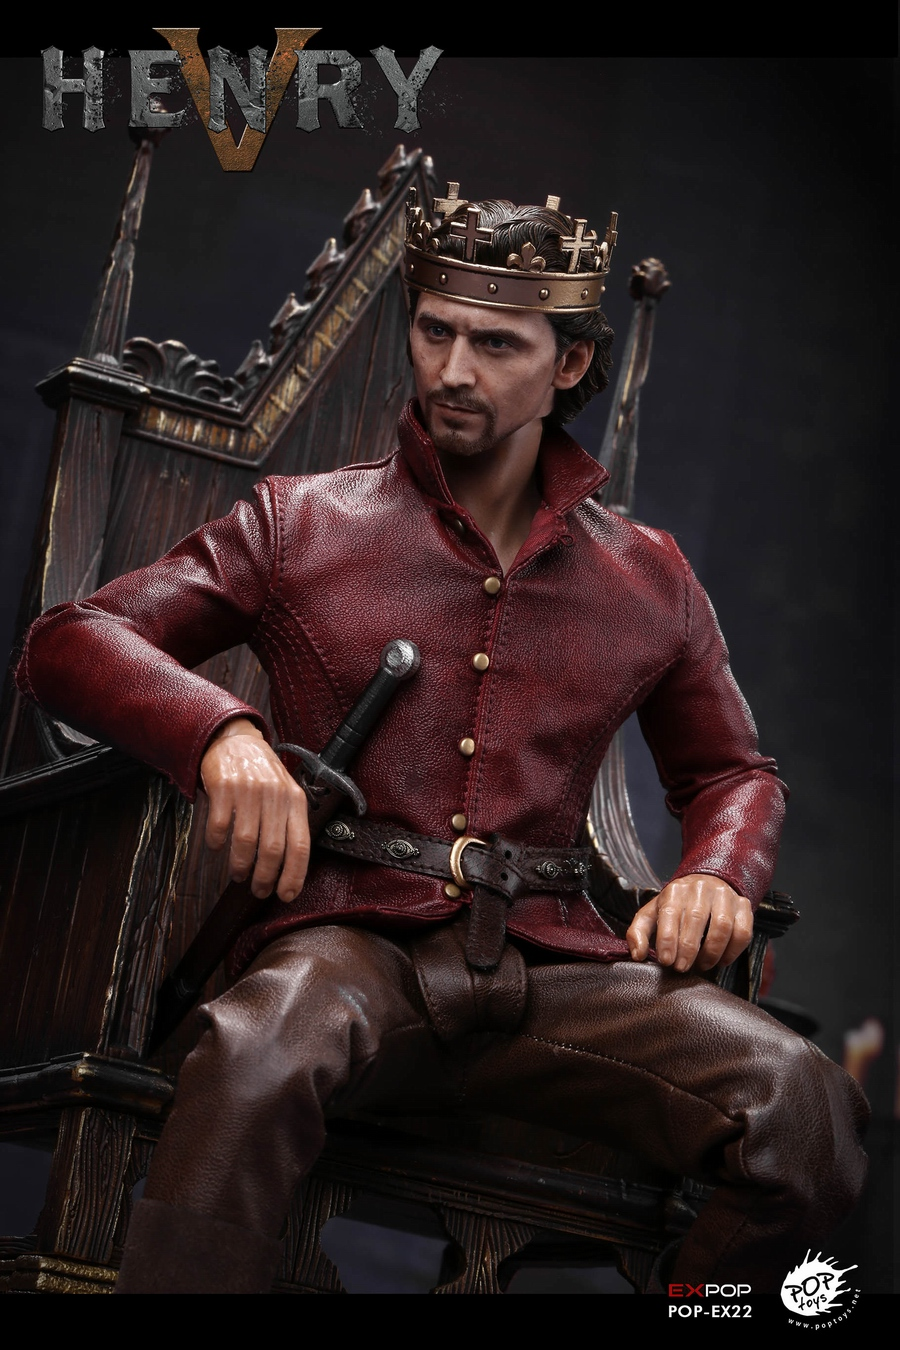 NEW PRODUCT: POPTOYS [WF2019 Shanghai Conference Edition]: 1/6 King of England - Henry V [The Throne Edition] POP-EX22 17591810